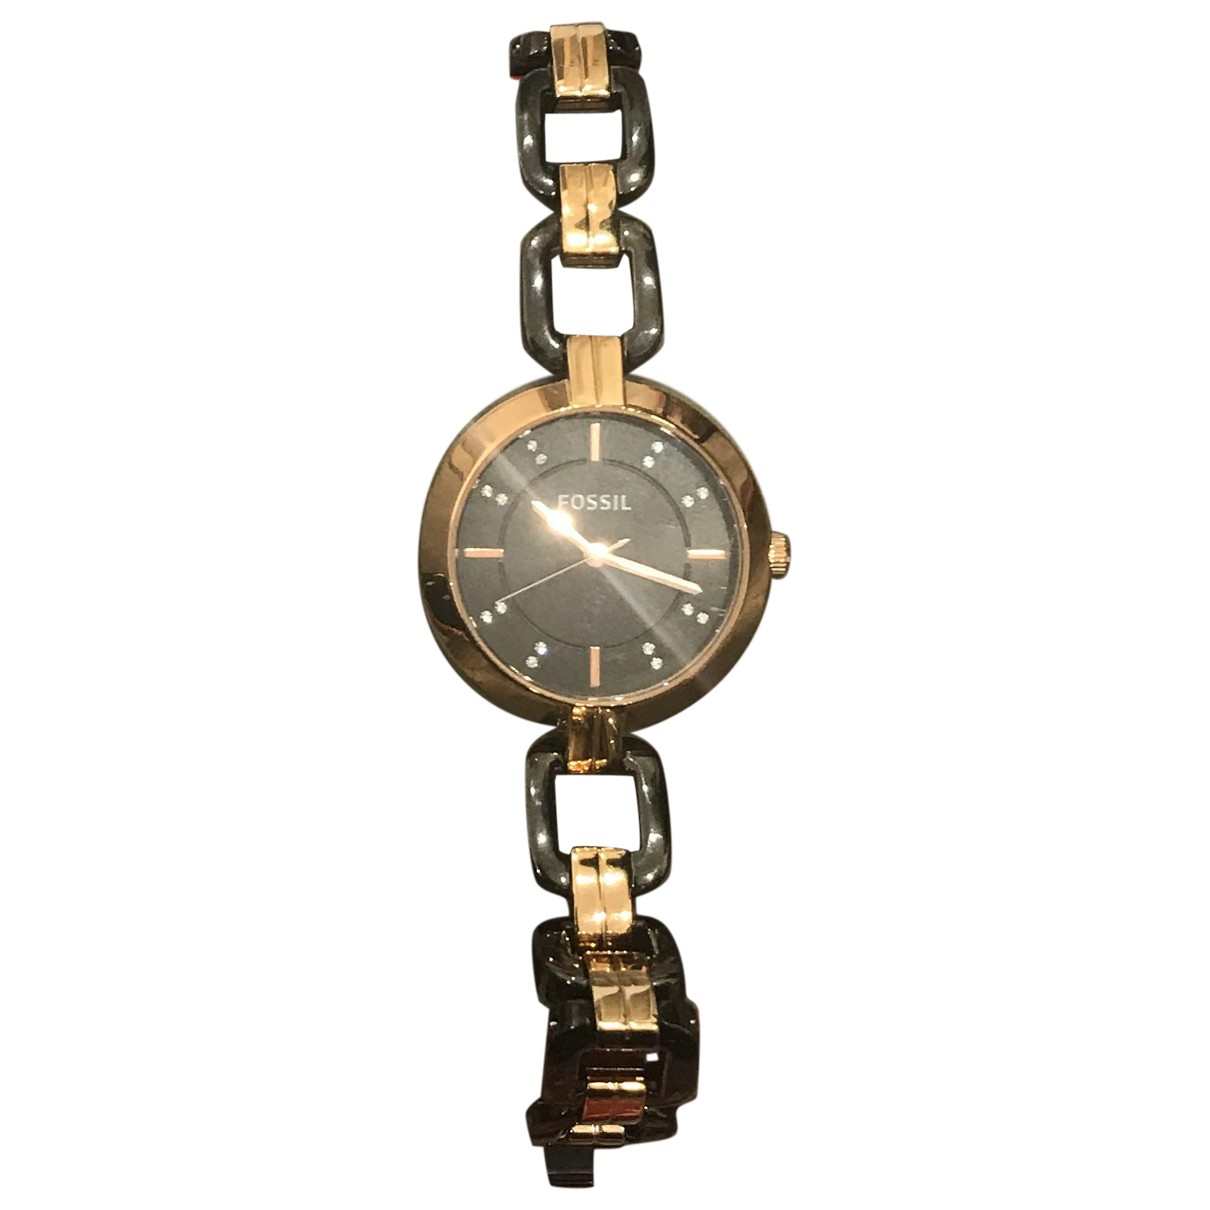 Fossil \N Steel watch for Women \N